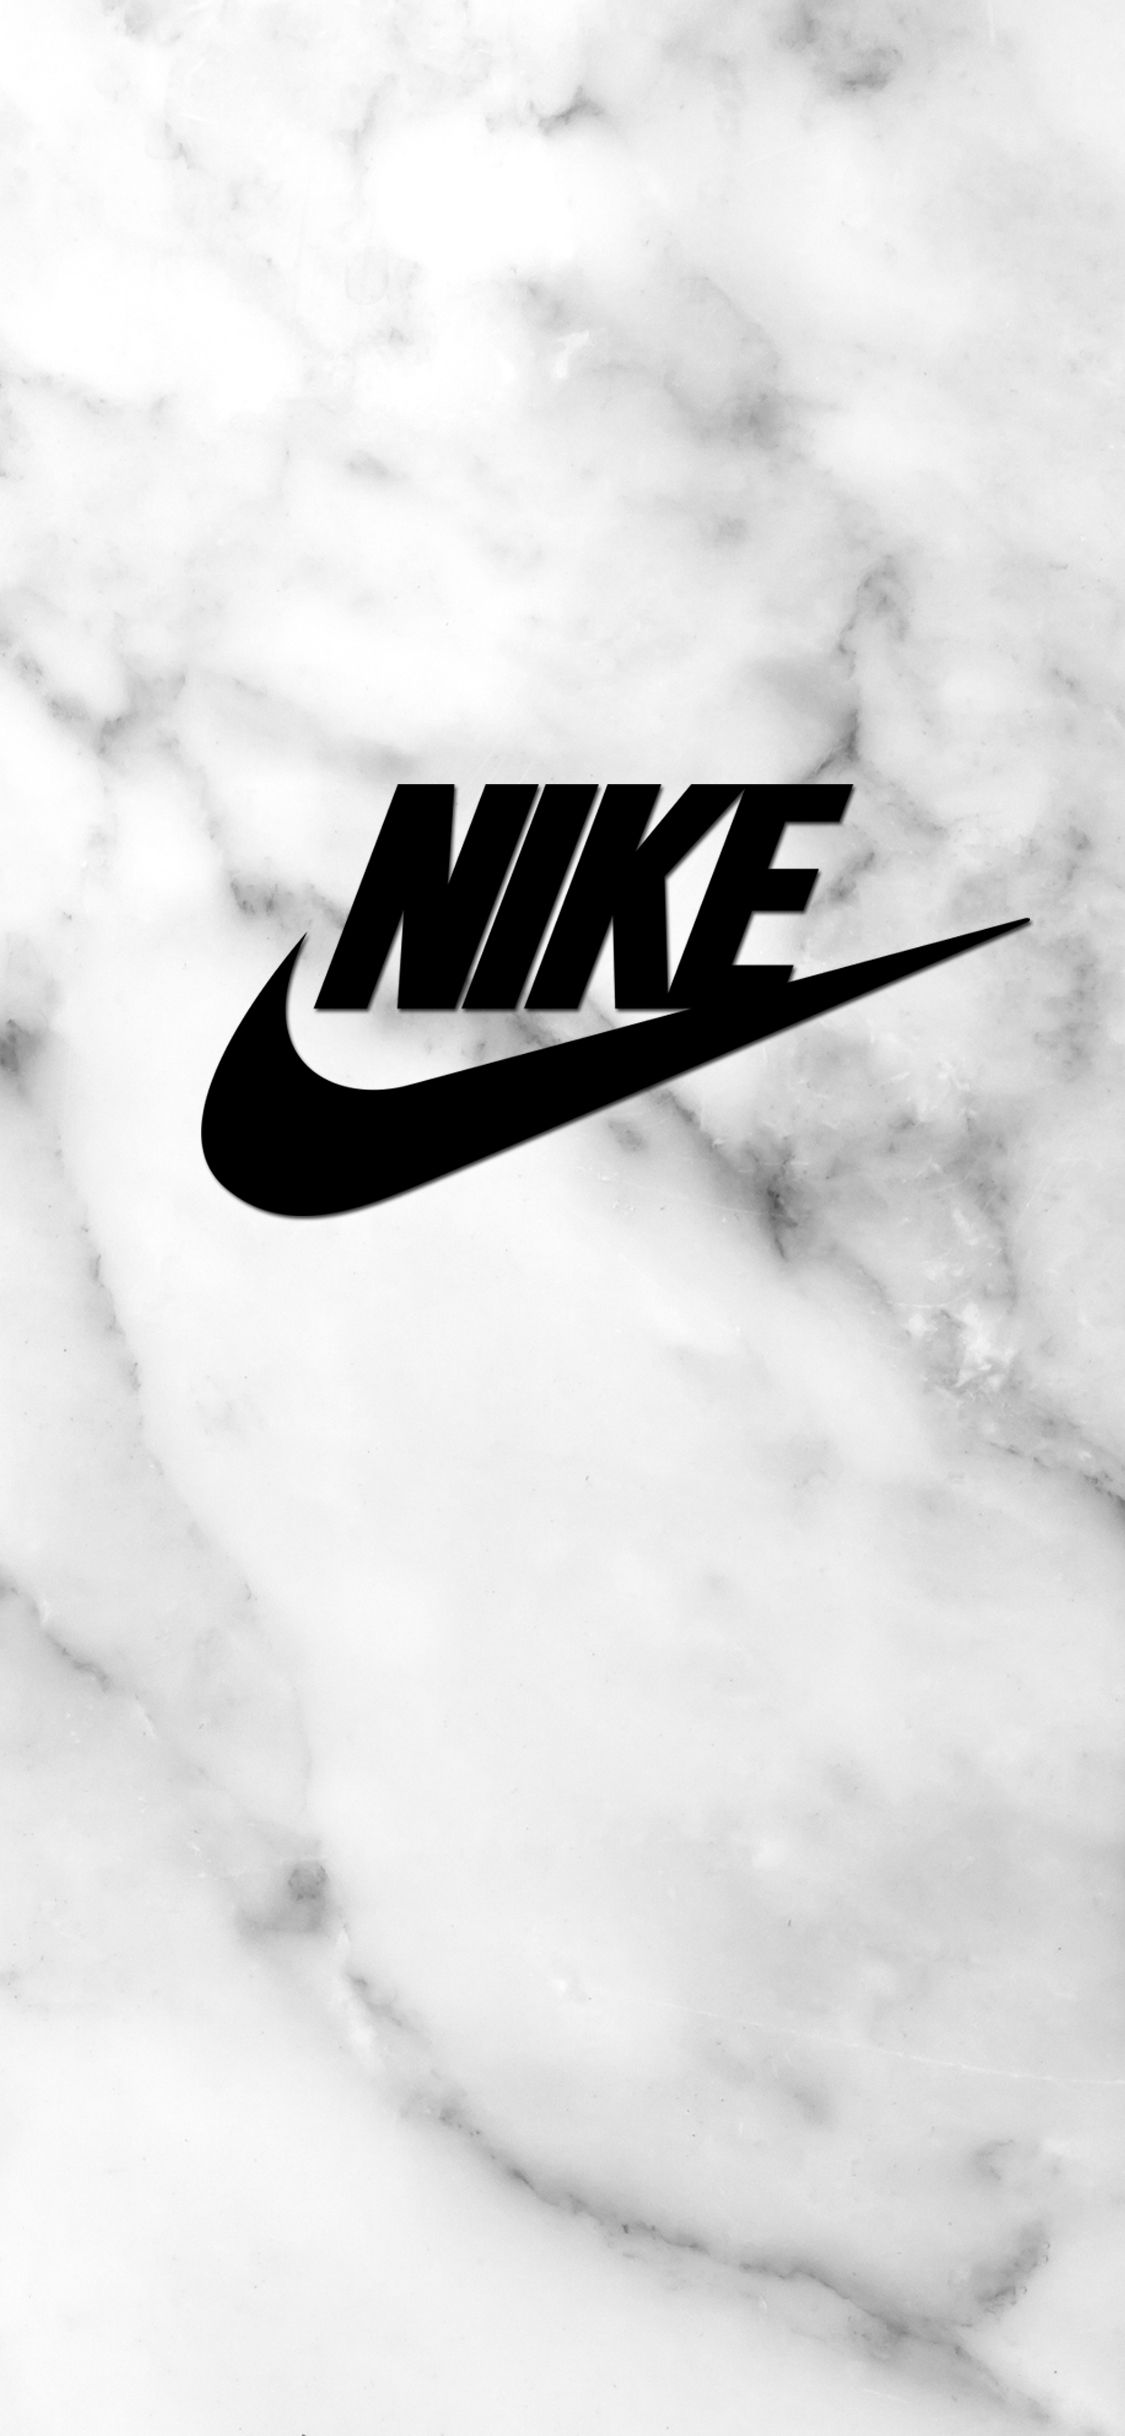 Nike iPhone X wallpaper. You can order iphone case with